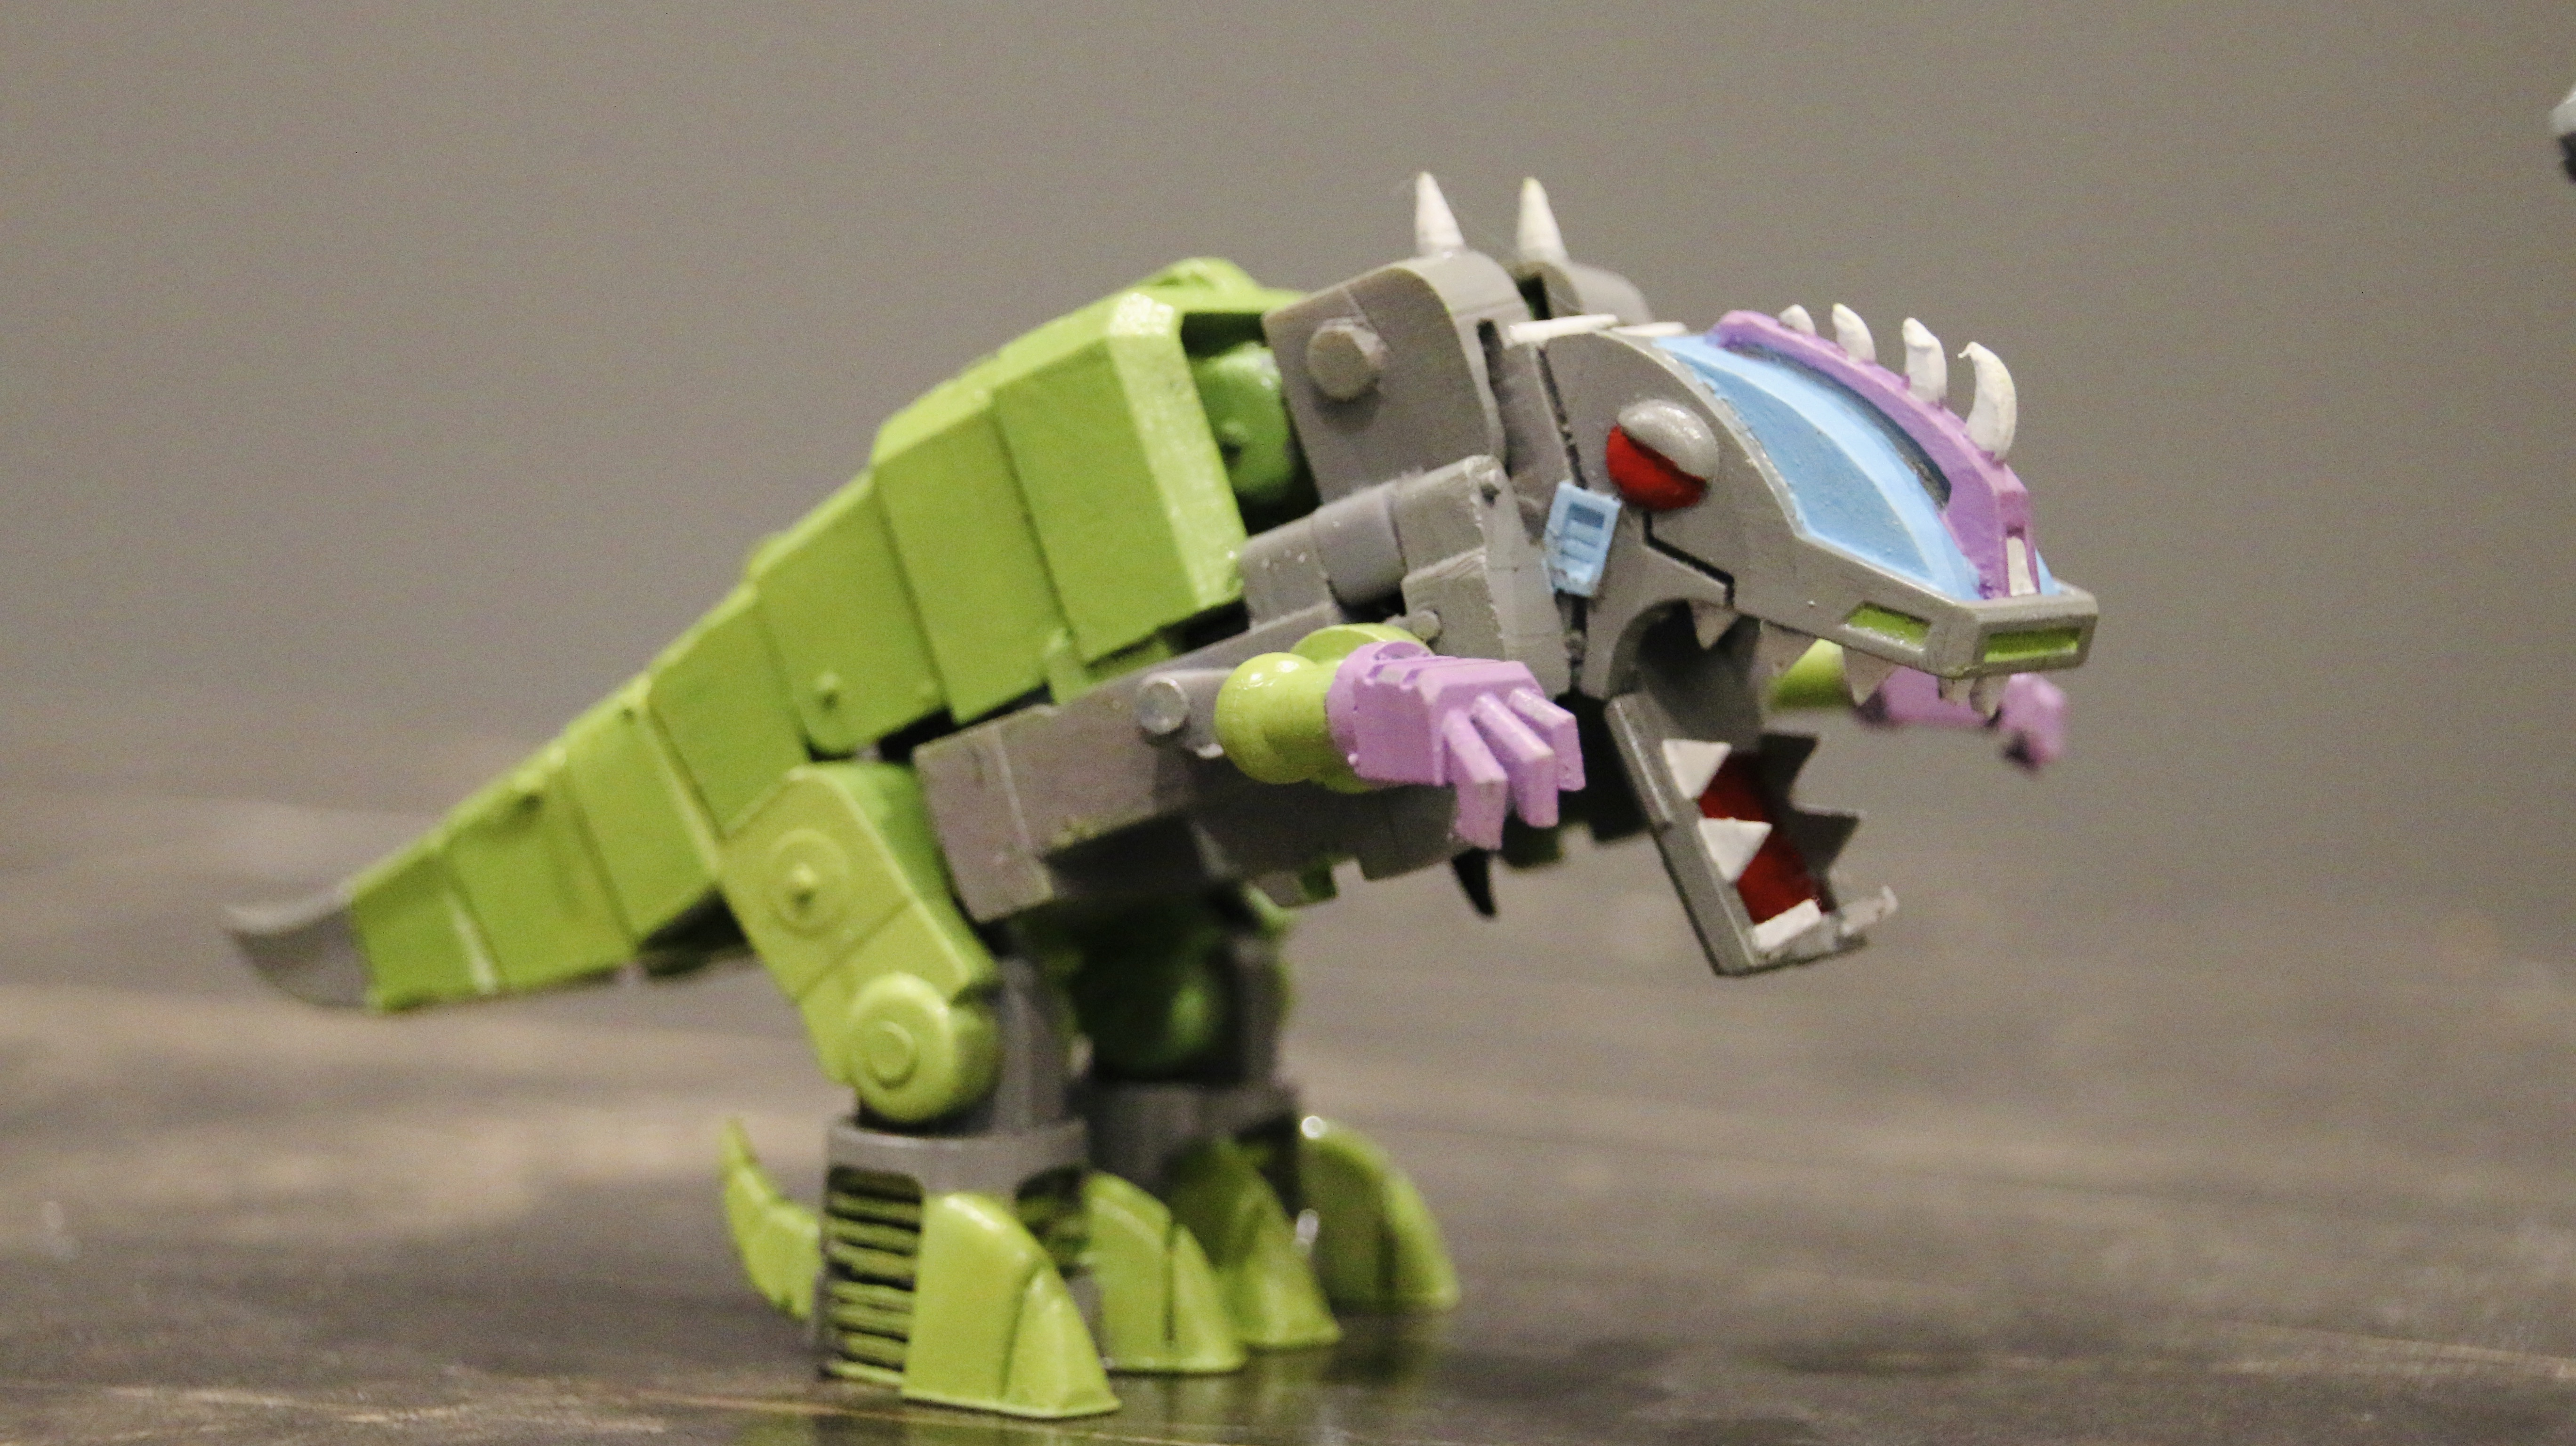 IMG_9845.jpg Download STL file Transformers G1 Allicon (11cm Scale) • 3D print object, mmshightail